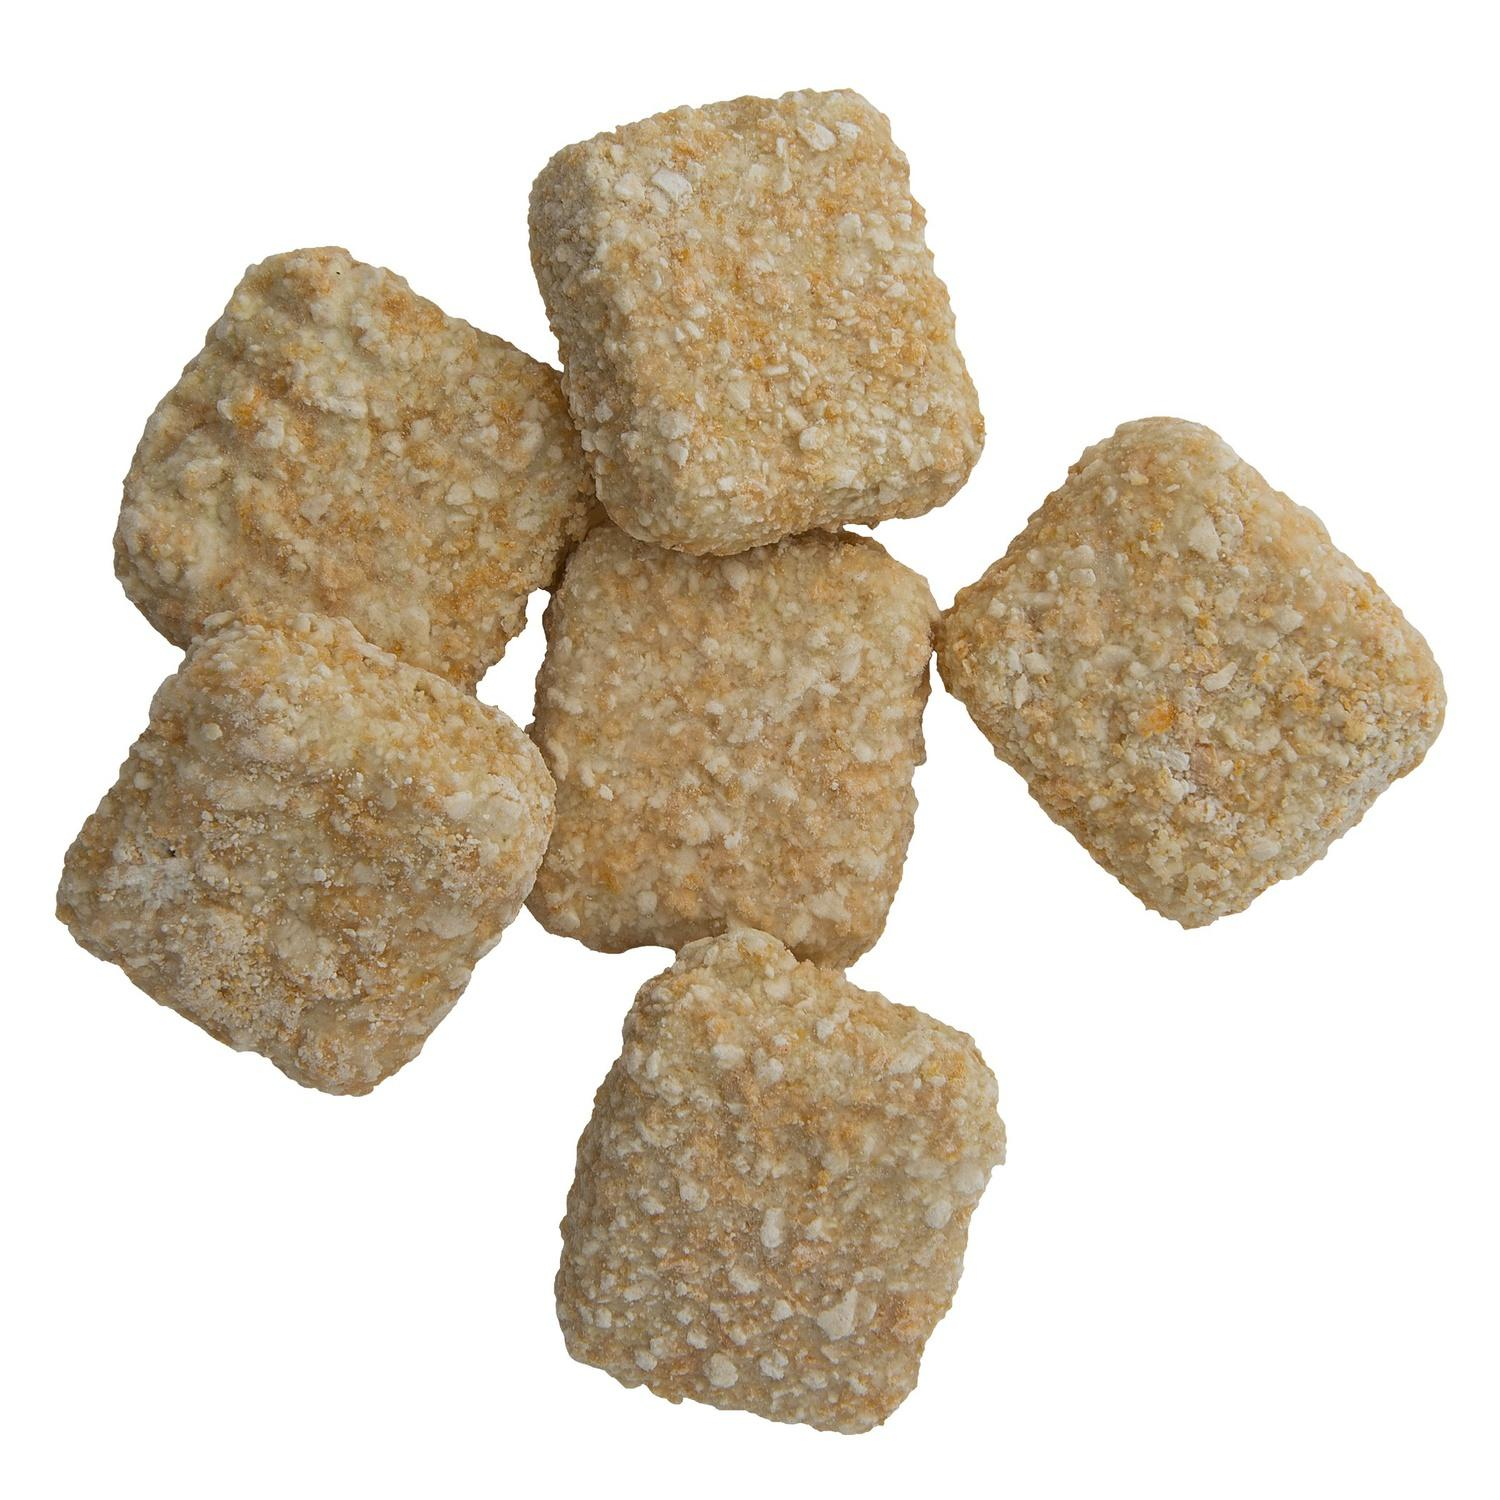 Image of Appetizer Cheese Pimento Breaded Squares